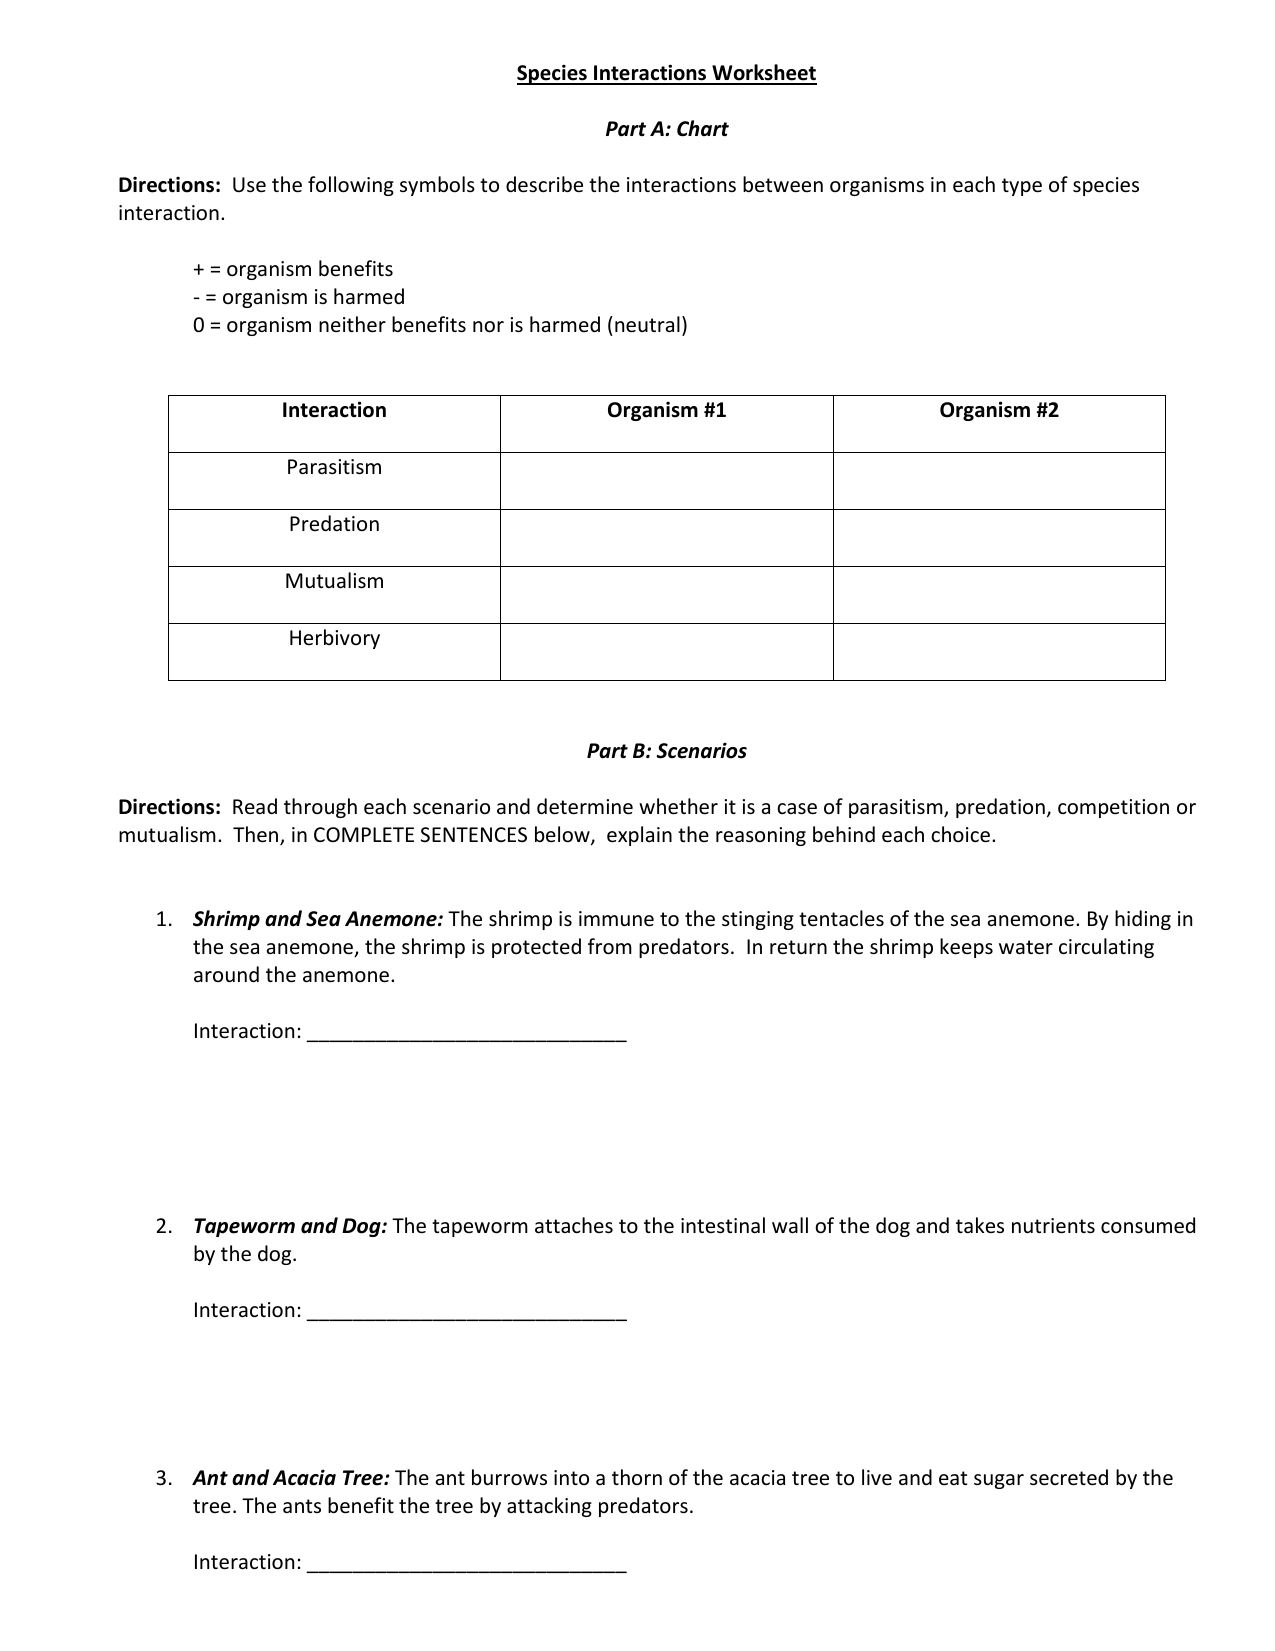 Species Interaction Worksheet